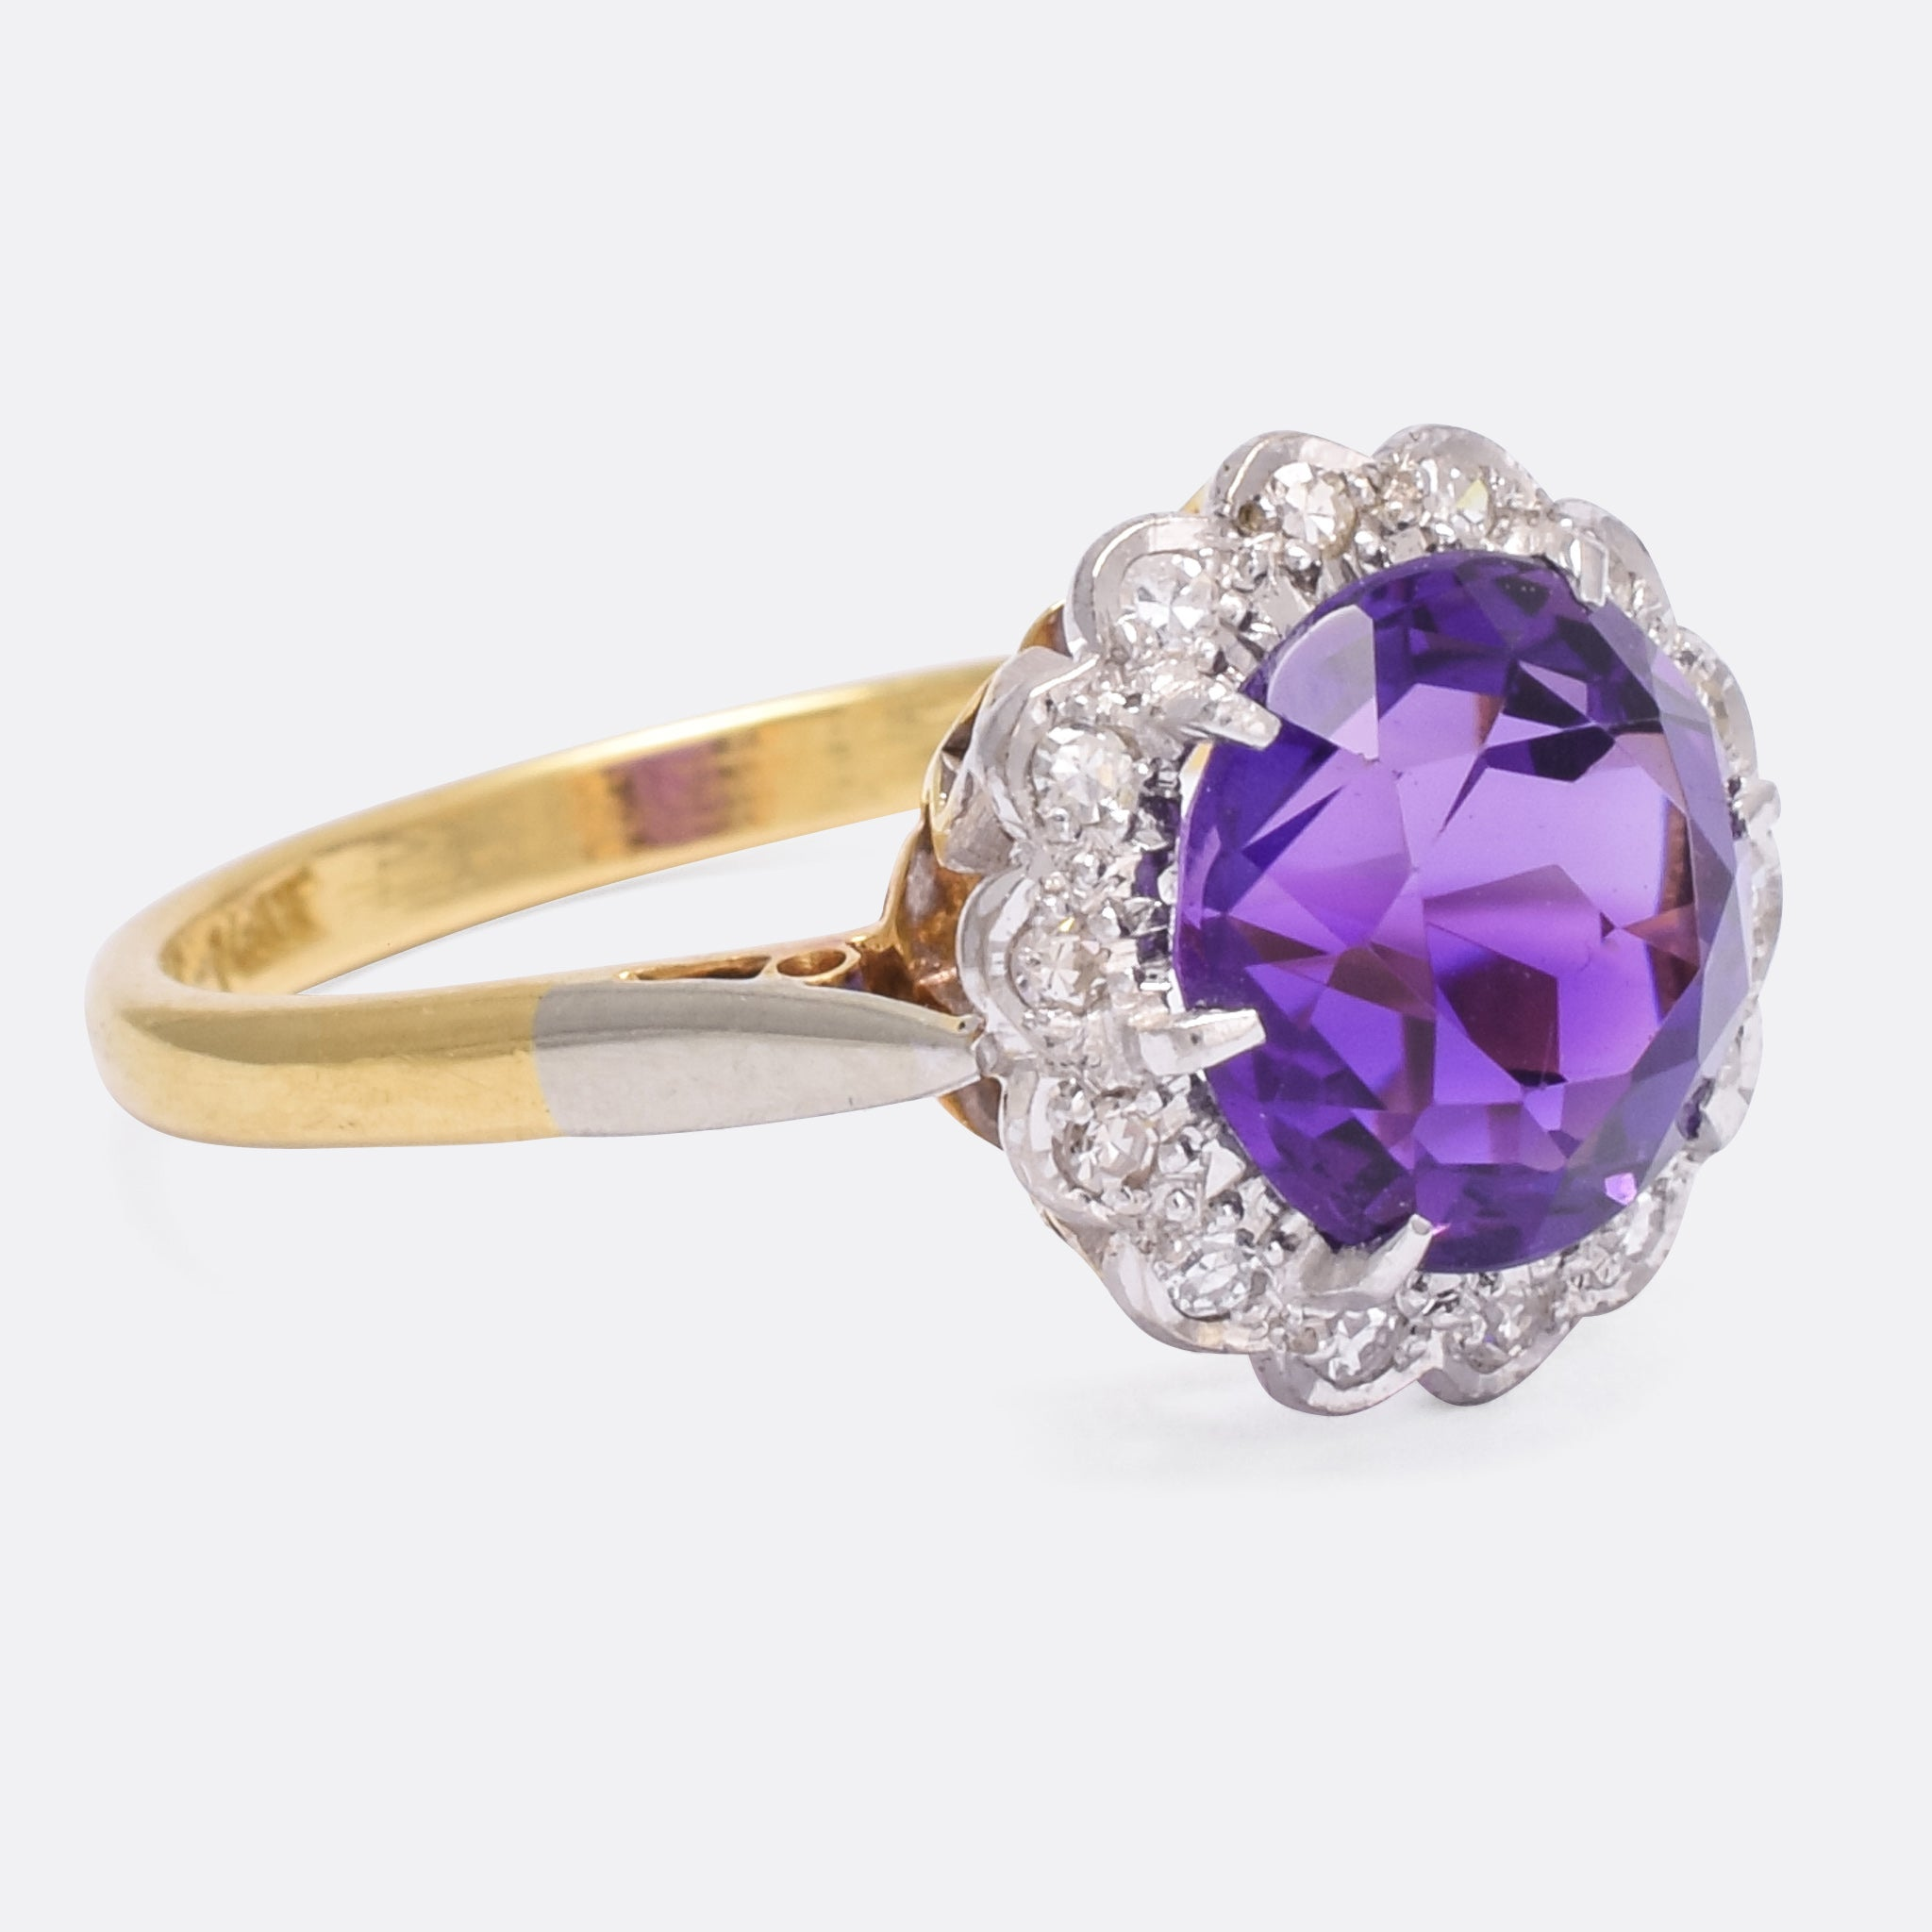 id retro amethyst j diamond approximate rings ring org amethist shaped engagement jewelry at cocktail heart carat and